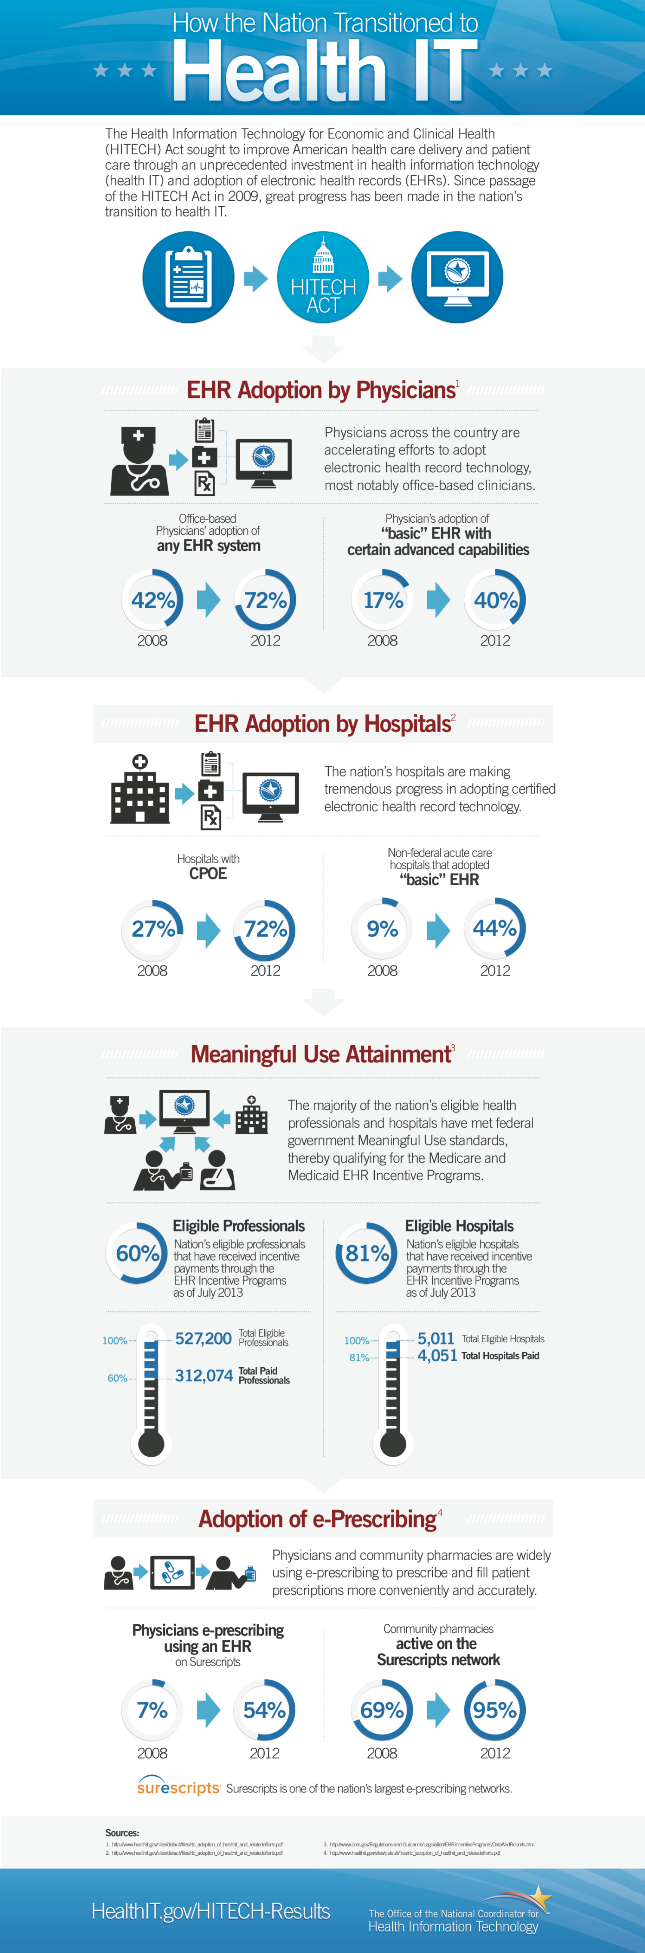 ONC Health IT Infographic